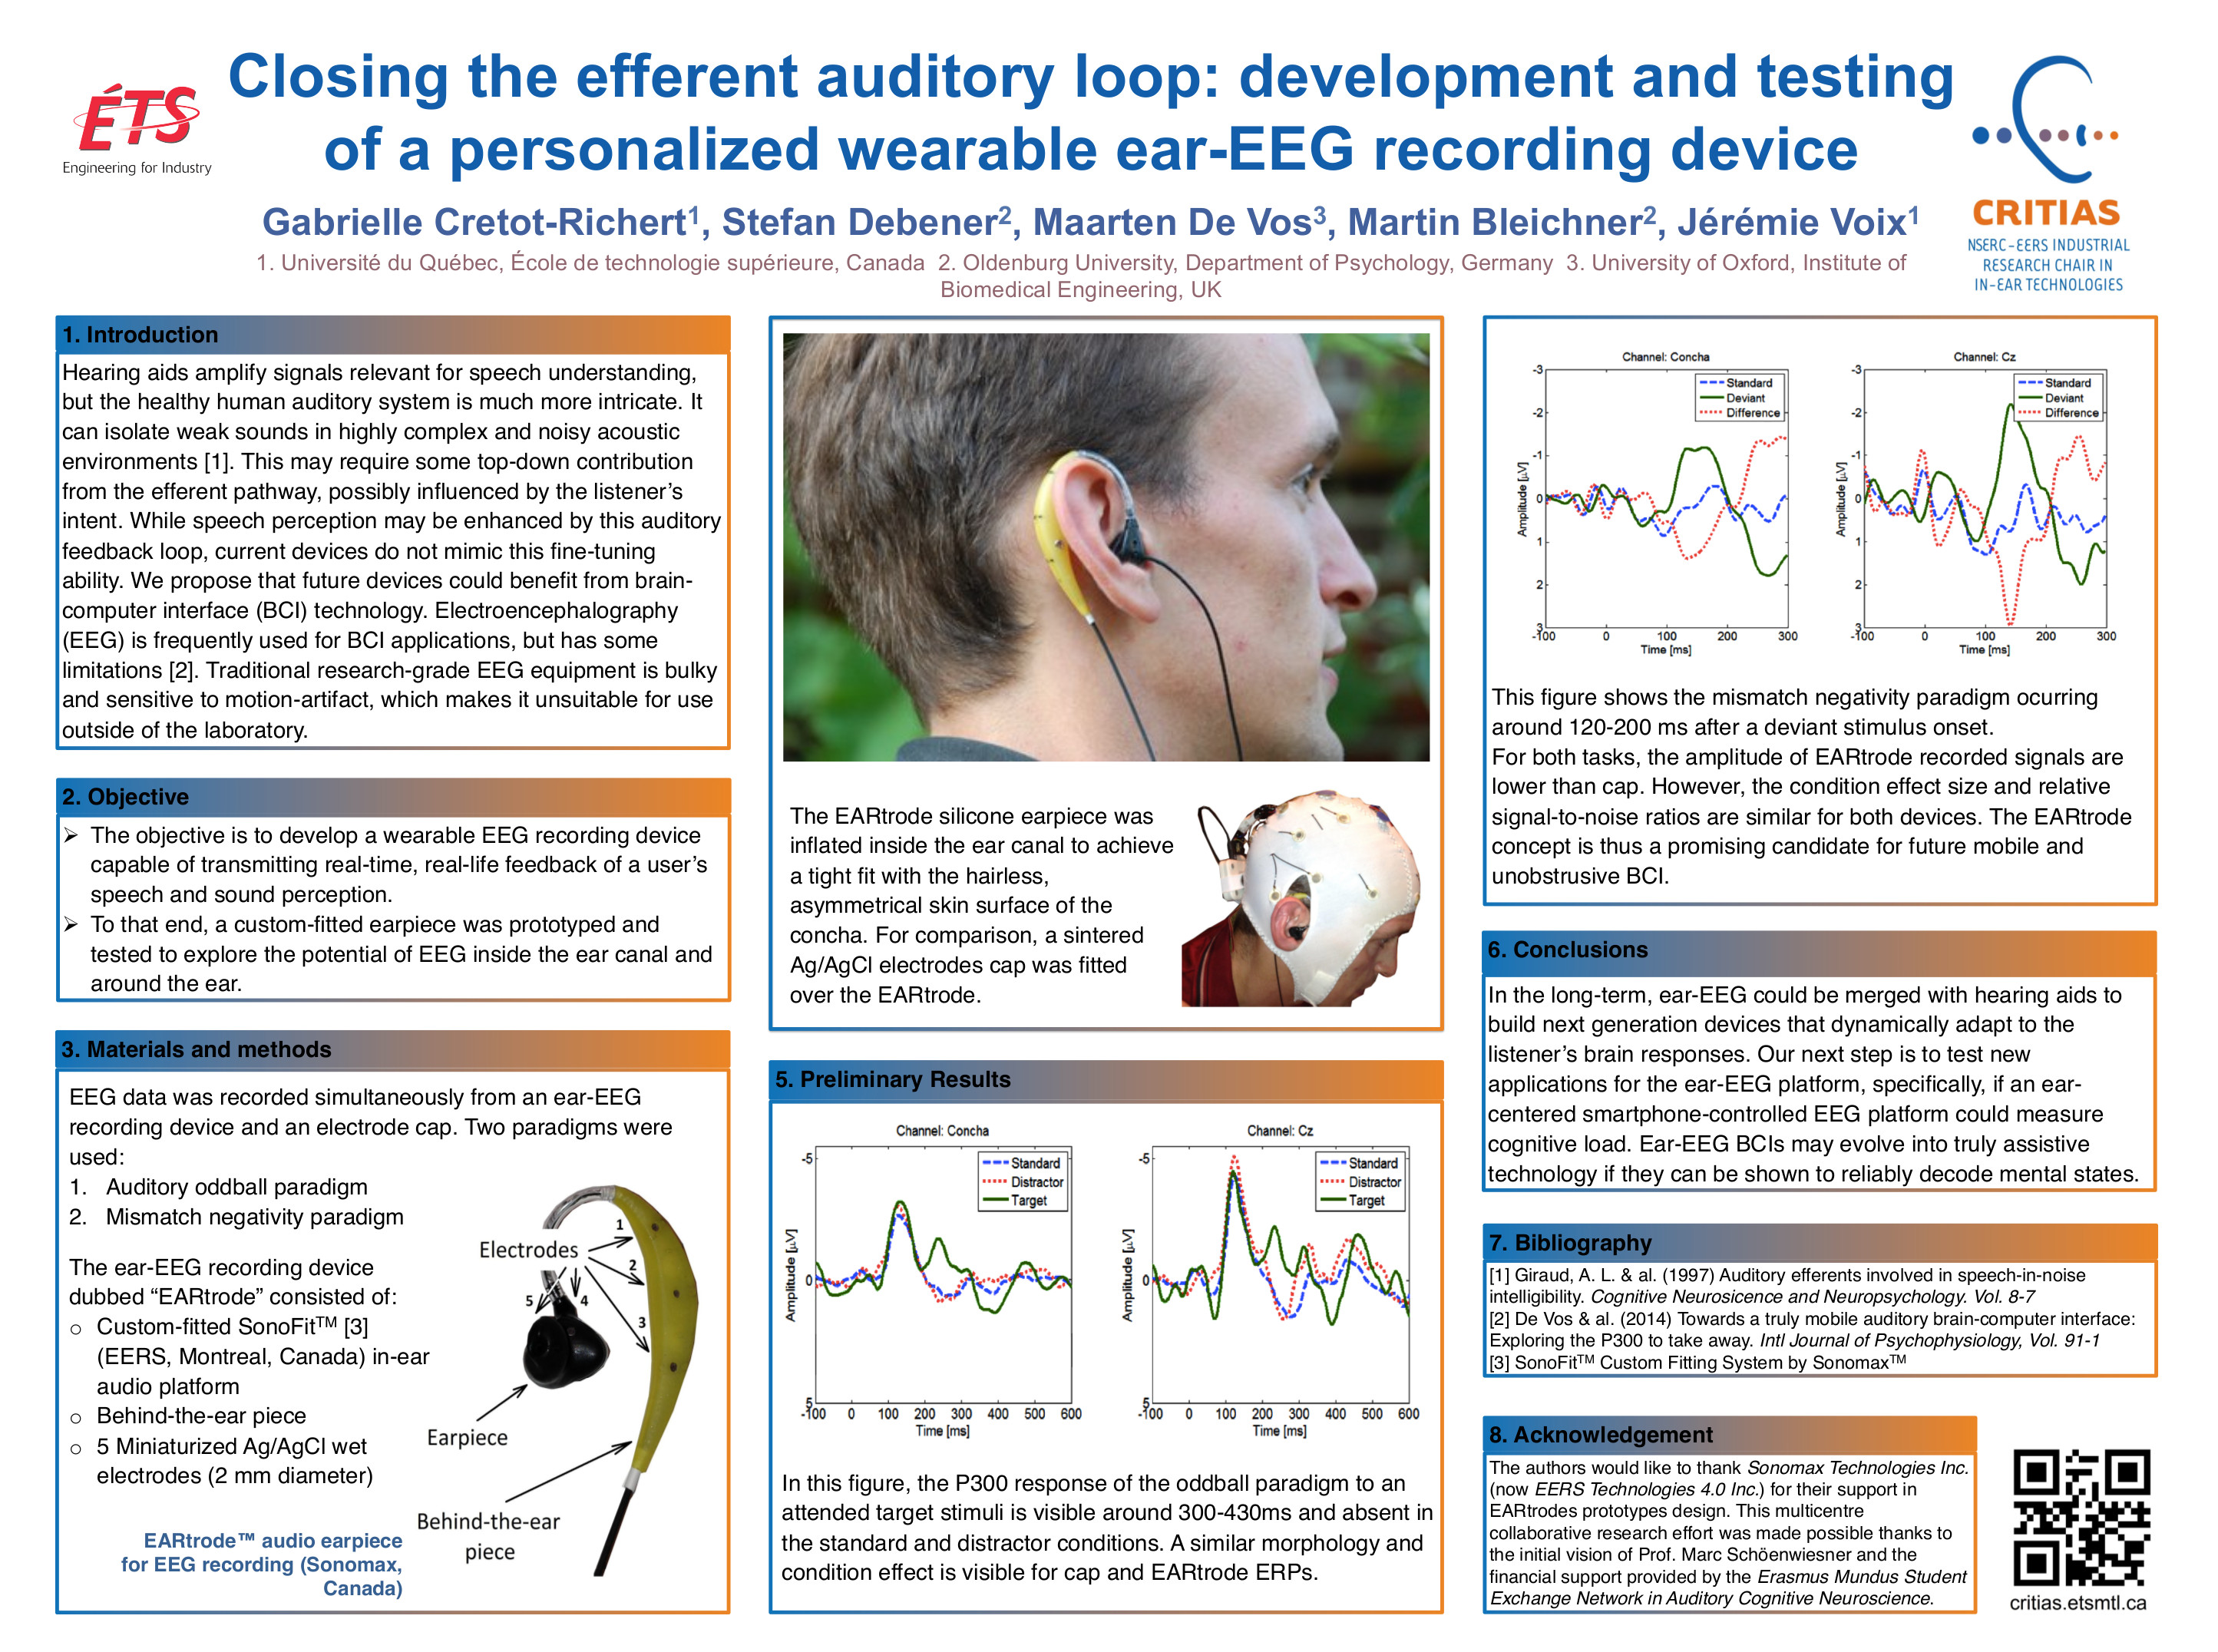 Cretot-Richert - 2017 - Development and testing of a personalized wearable ear-EEG recording device